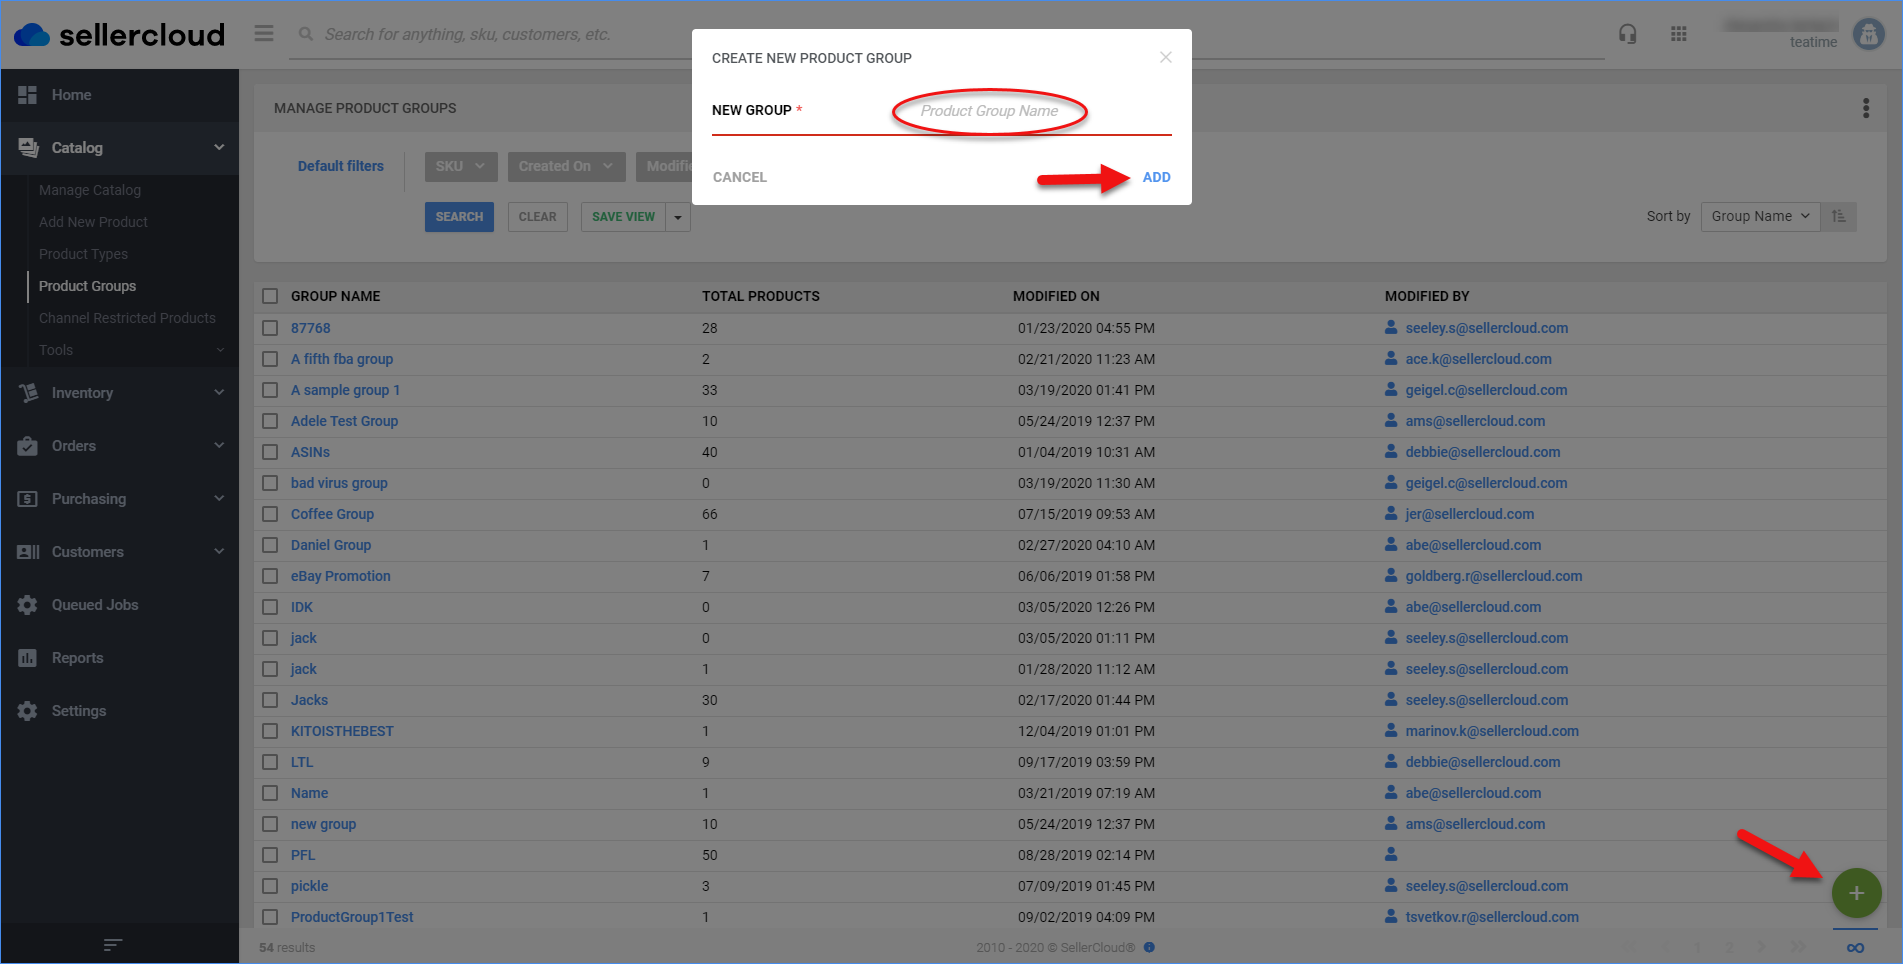 sellercloud product groups create new product group function